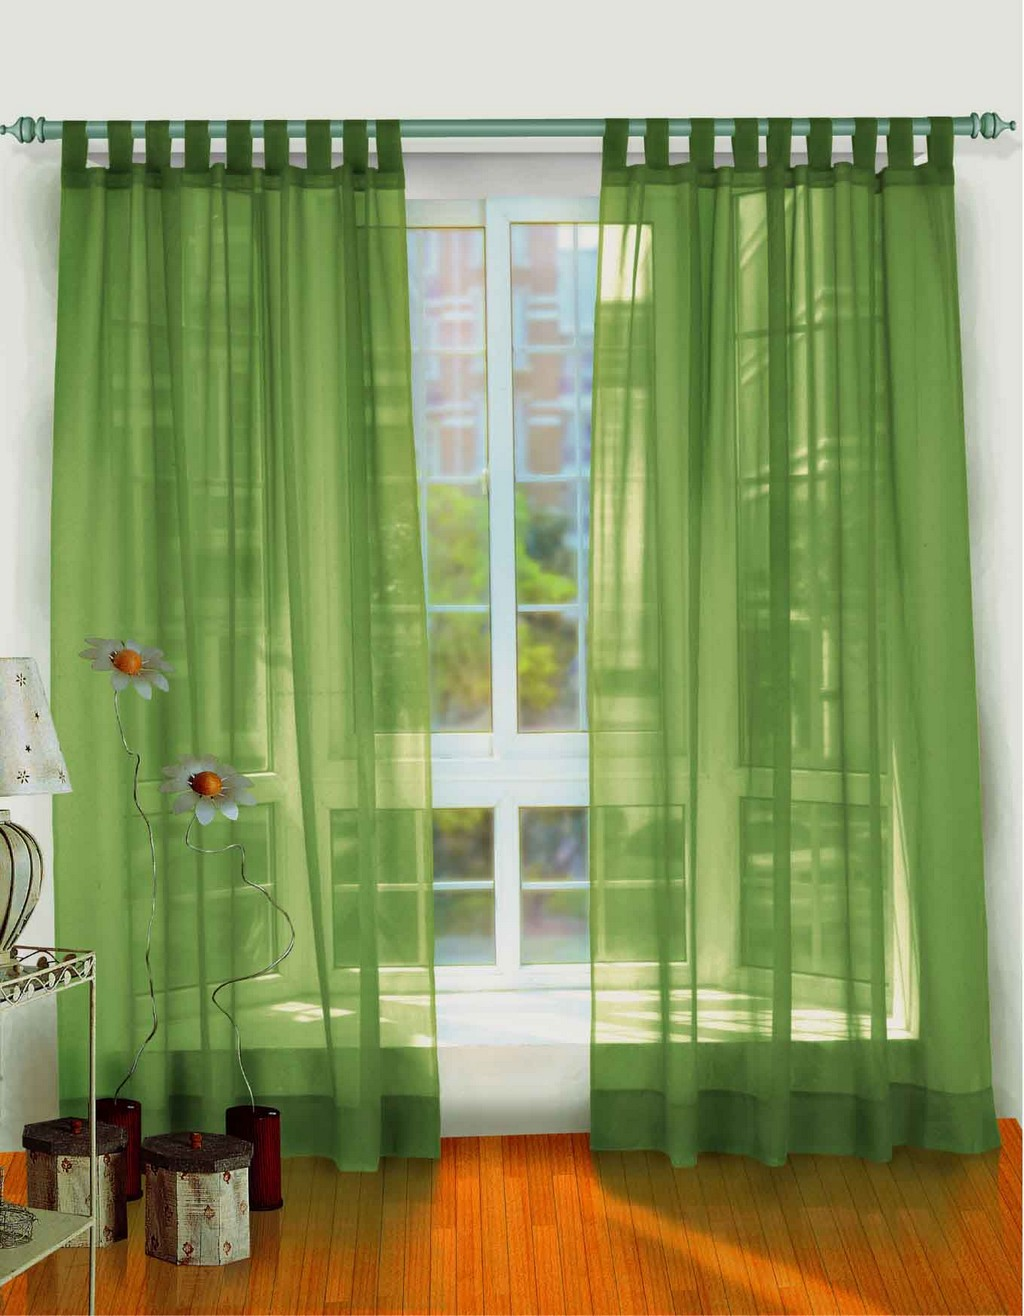 oval window curtains, sheer window curtains, cafe curtains, bay window curtains